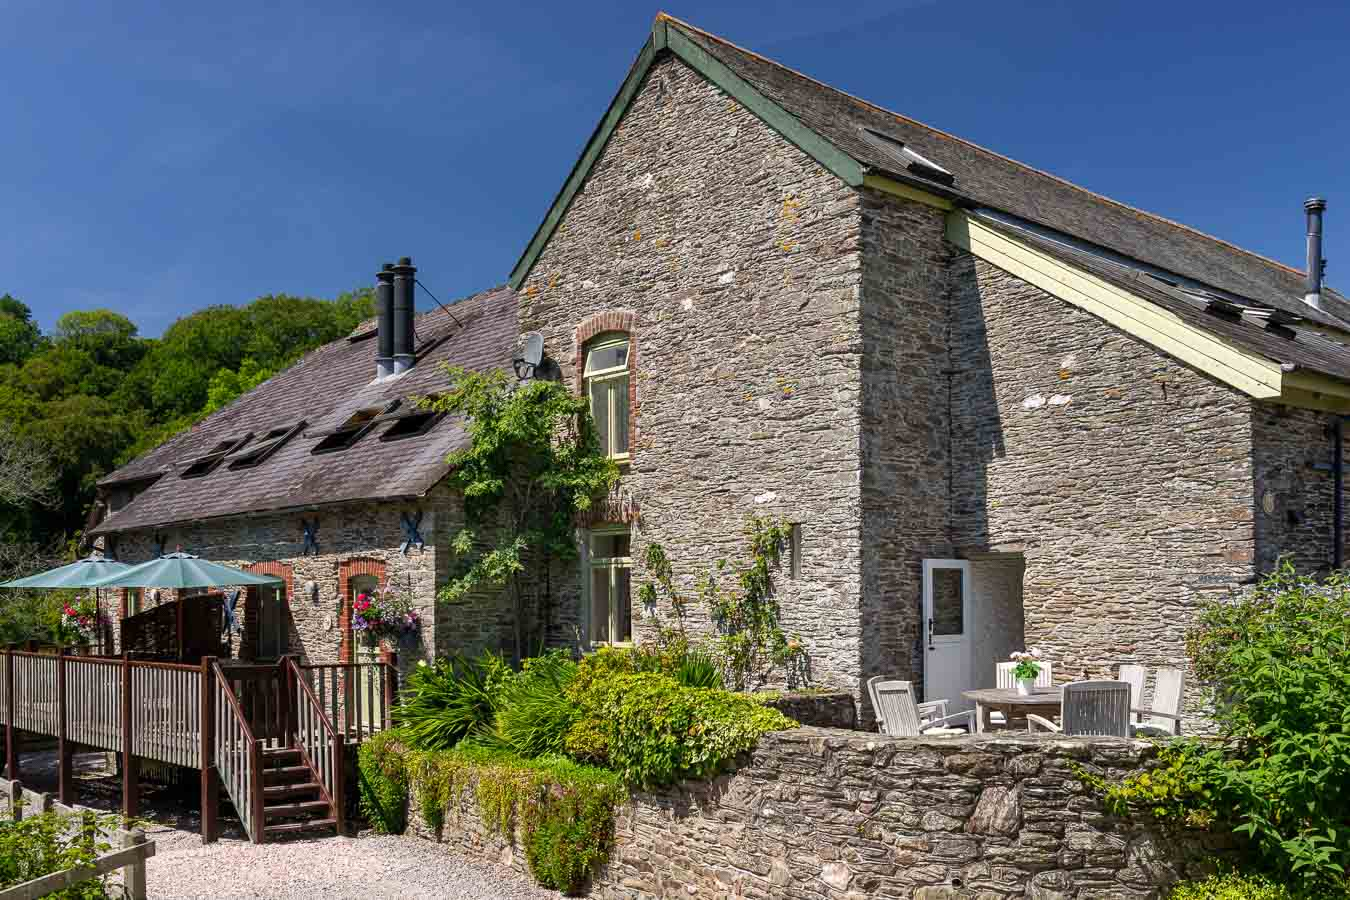 The beautiful stone buildings of Flear Farm holiday cottages. With sun terraces and mature gardens.